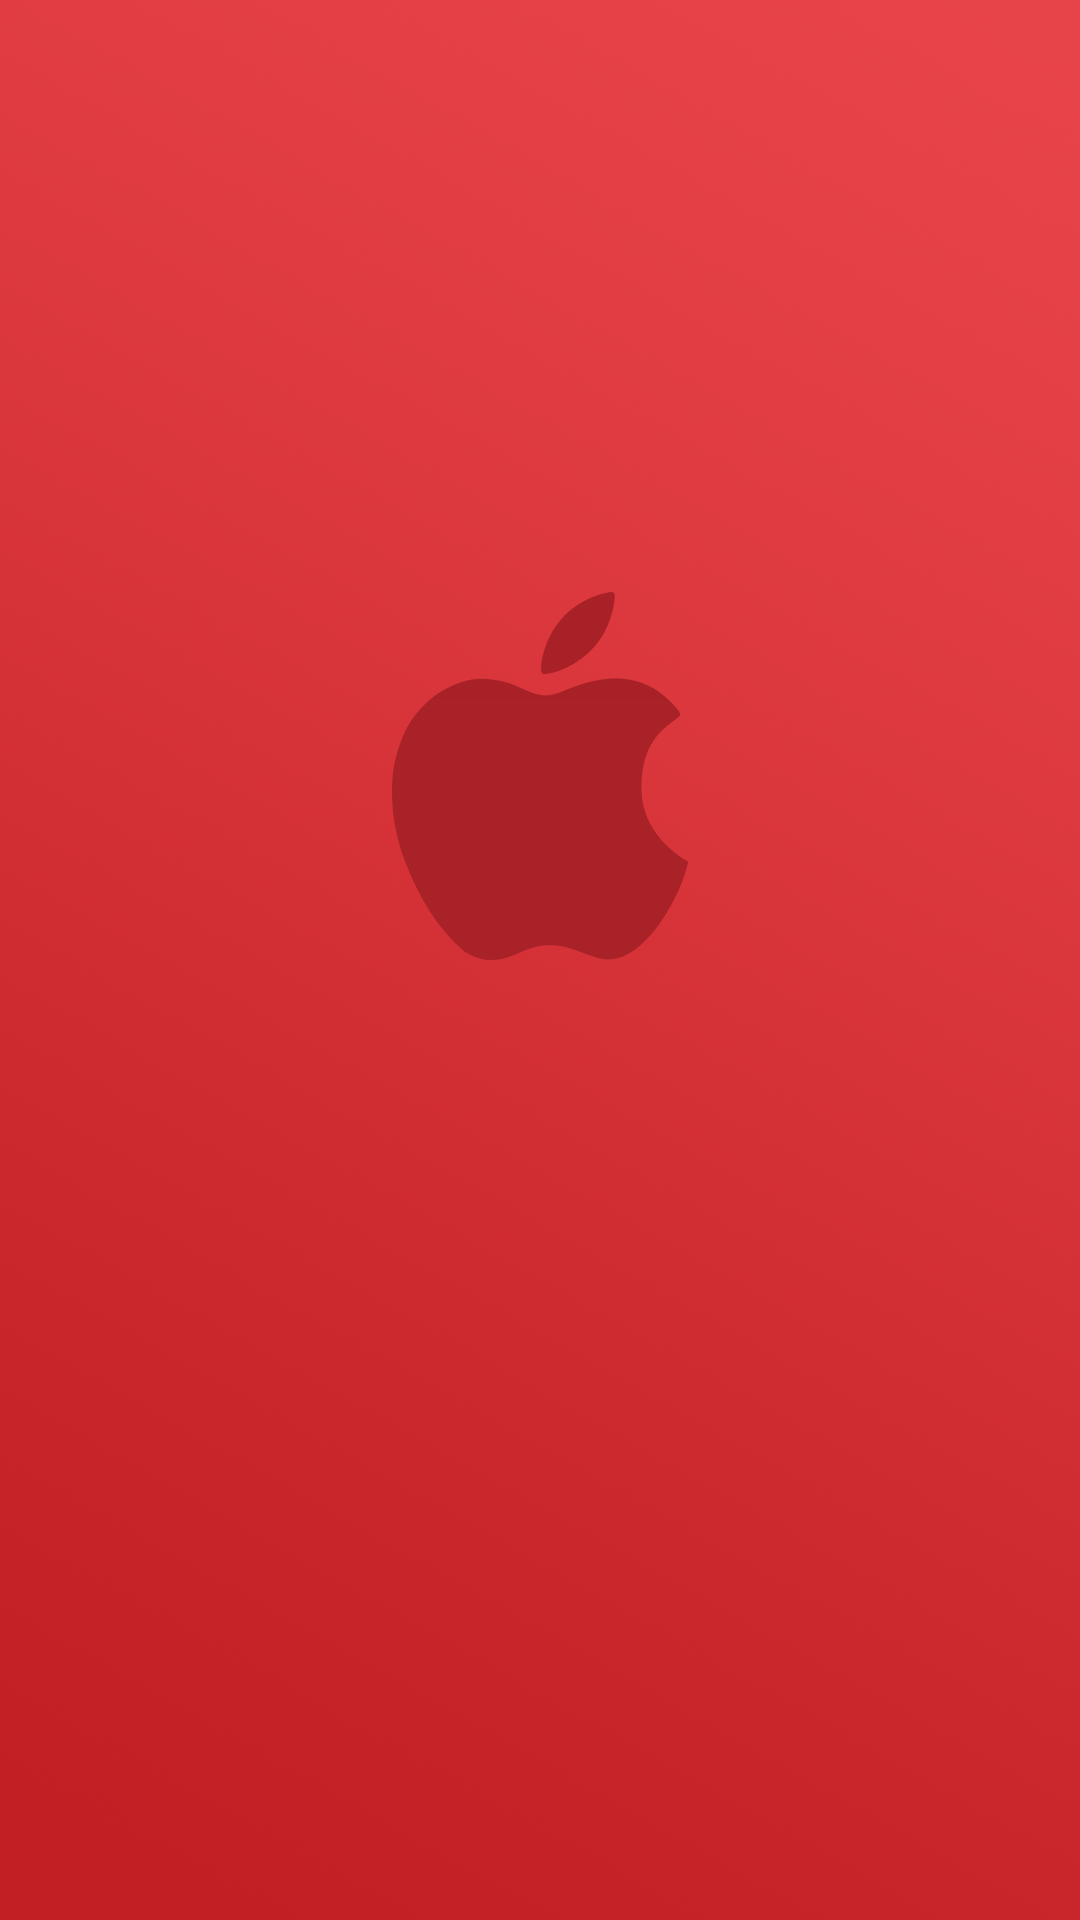 World AIDS Day Product RED inspired wallpapers 1080x1920